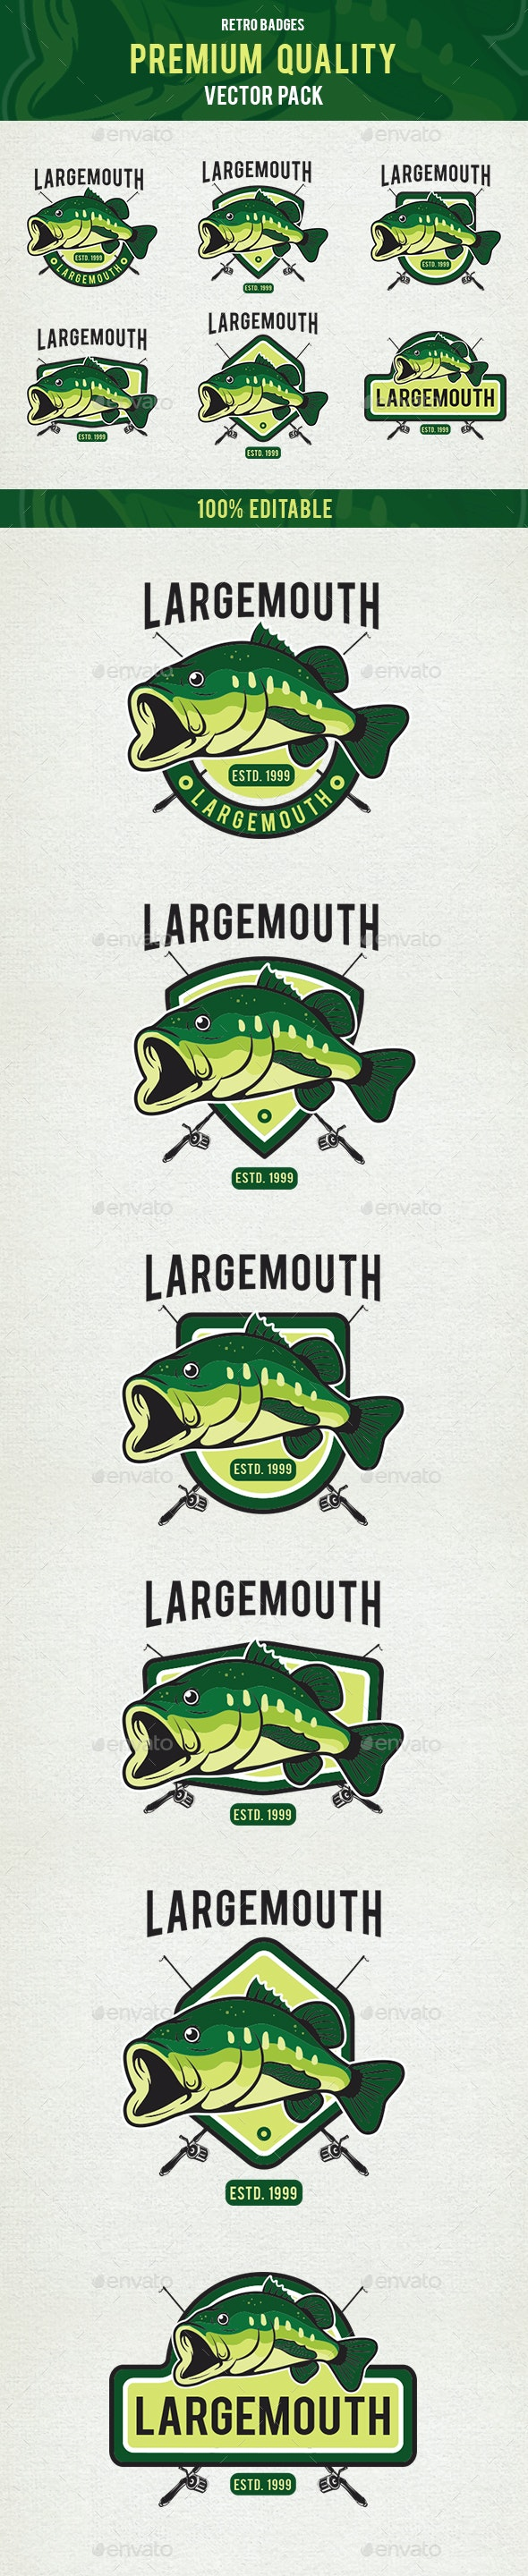 Largemouth Bass Fish - Premium Badges Vectors - Badges & Stickers Web Elements